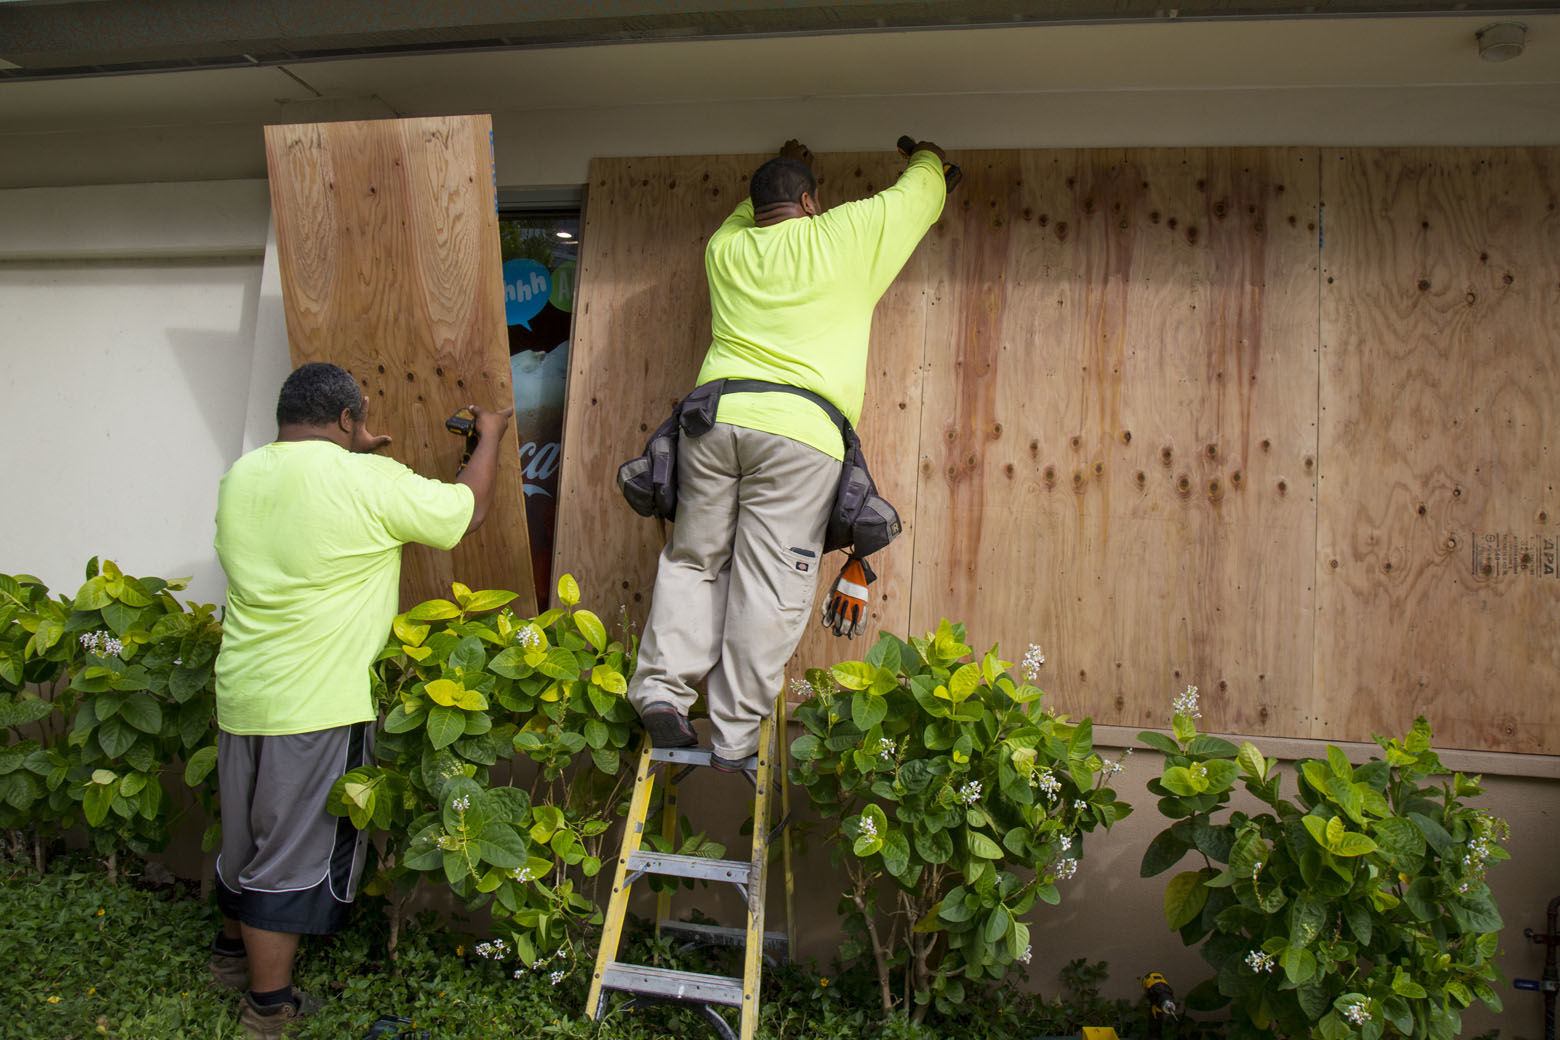 HONOLULU, HI - AUGUST 22:    Yamasaki Construction workers, Talbot Khakai, left, and David Halafihi board up McDonalds multiple plate glass windows in preparation for Hurricane Lane on Kalaukaua Ave on Wednesday, August 22, 2018 in Honolulu, Hawaii. Hurricane Lane is a high-end Category 4 hurricane and remains a threat to the entire island chain. (Photo by Kat Wade/Getty Images)